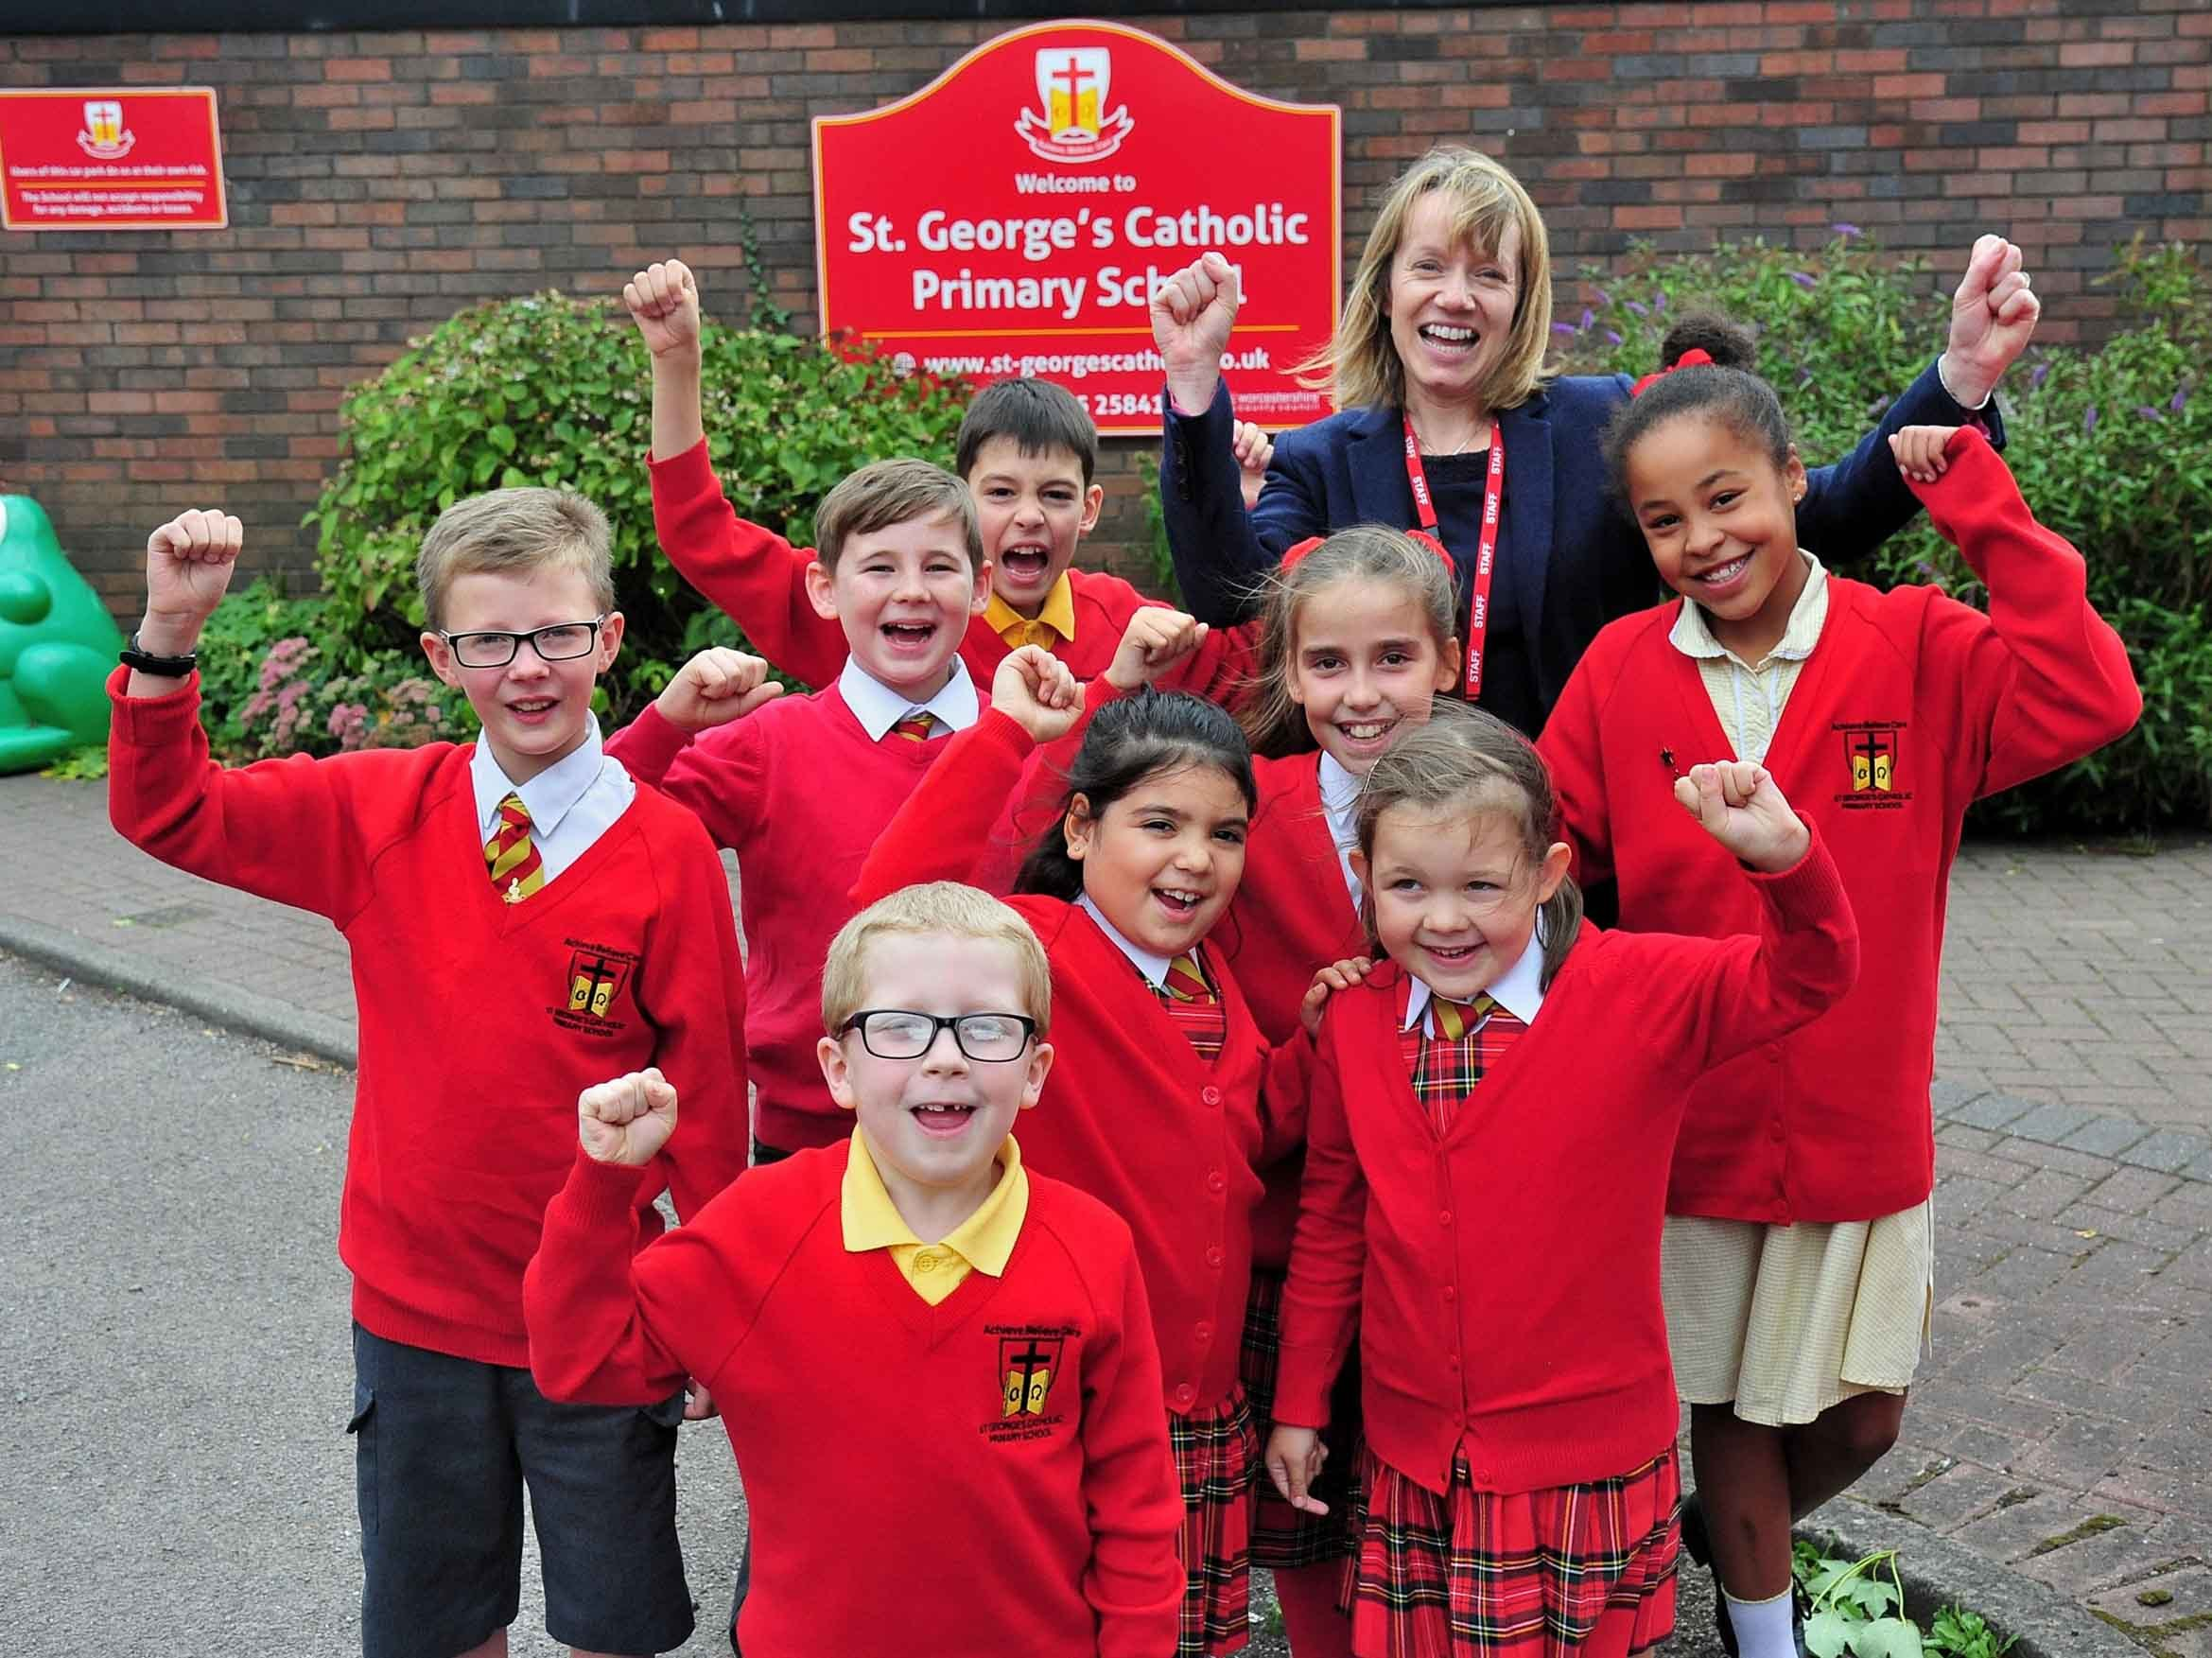 Gill Gittins, Headteacher at St Georges Catholic Primary School, Worcester, with pupils celebrating their recent OFSTED report. Pic Jonathan Barry 19.09.18.